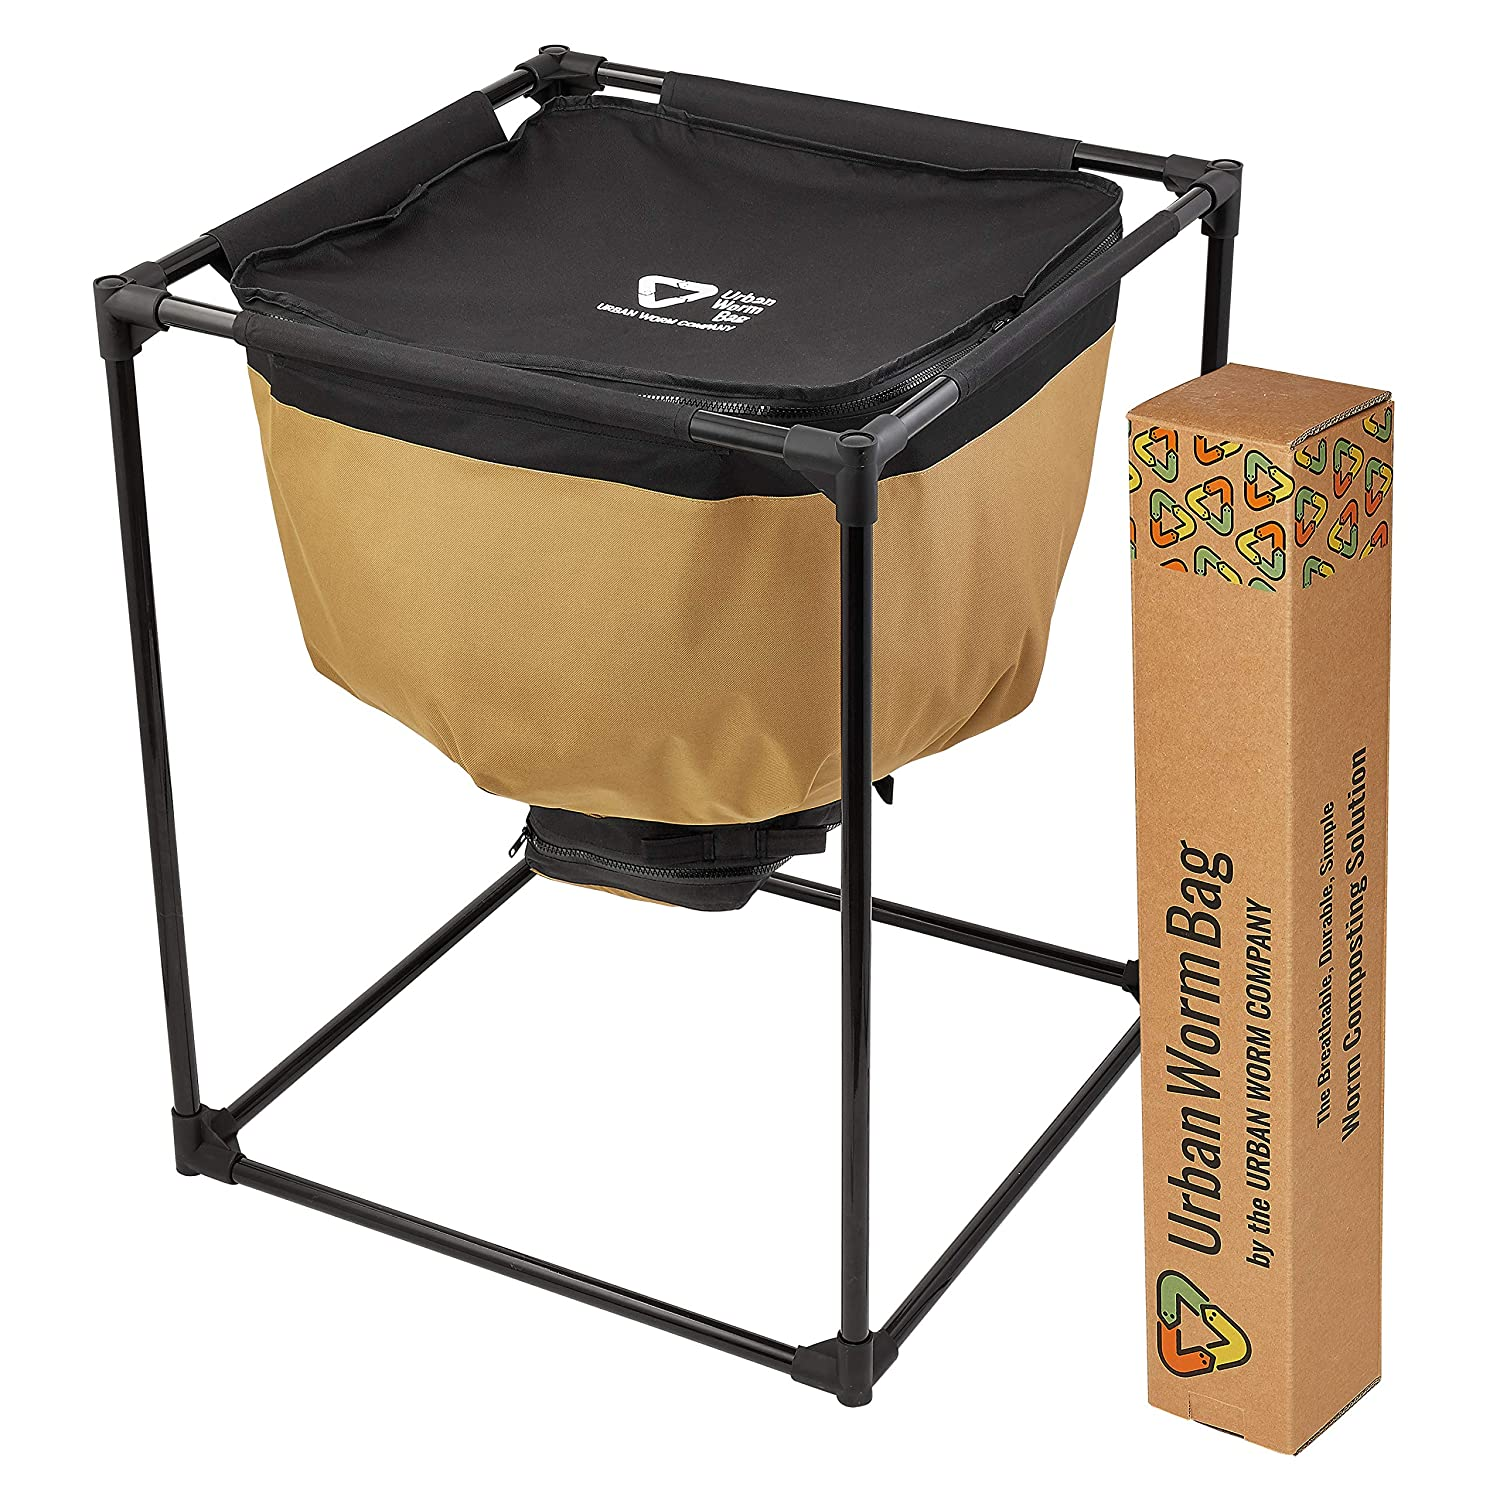 Urban Worm Bag Worm Composting Bin Version 2 - Breathable Worm Farm is Perfect for Recycling Organic Waste in Your Home, School, or Office Urban Worm Company 4335523781